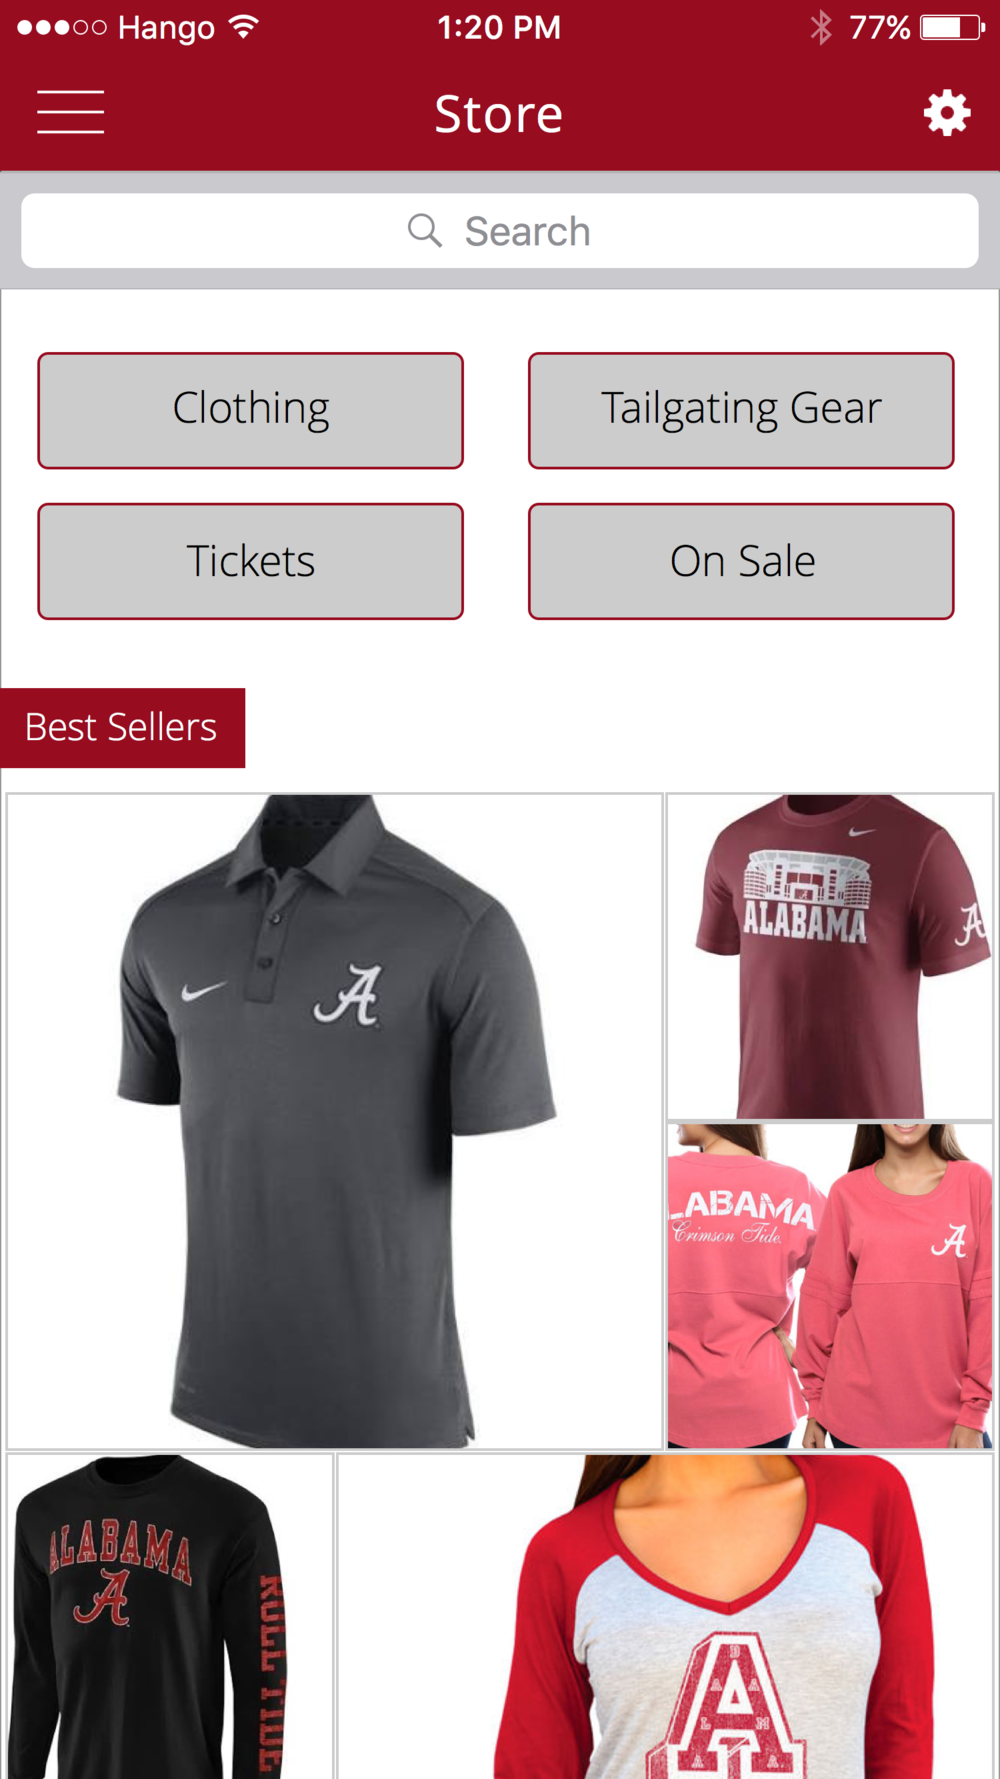 Store   Get gameday ready with tickets, clothing and tailgating gear.